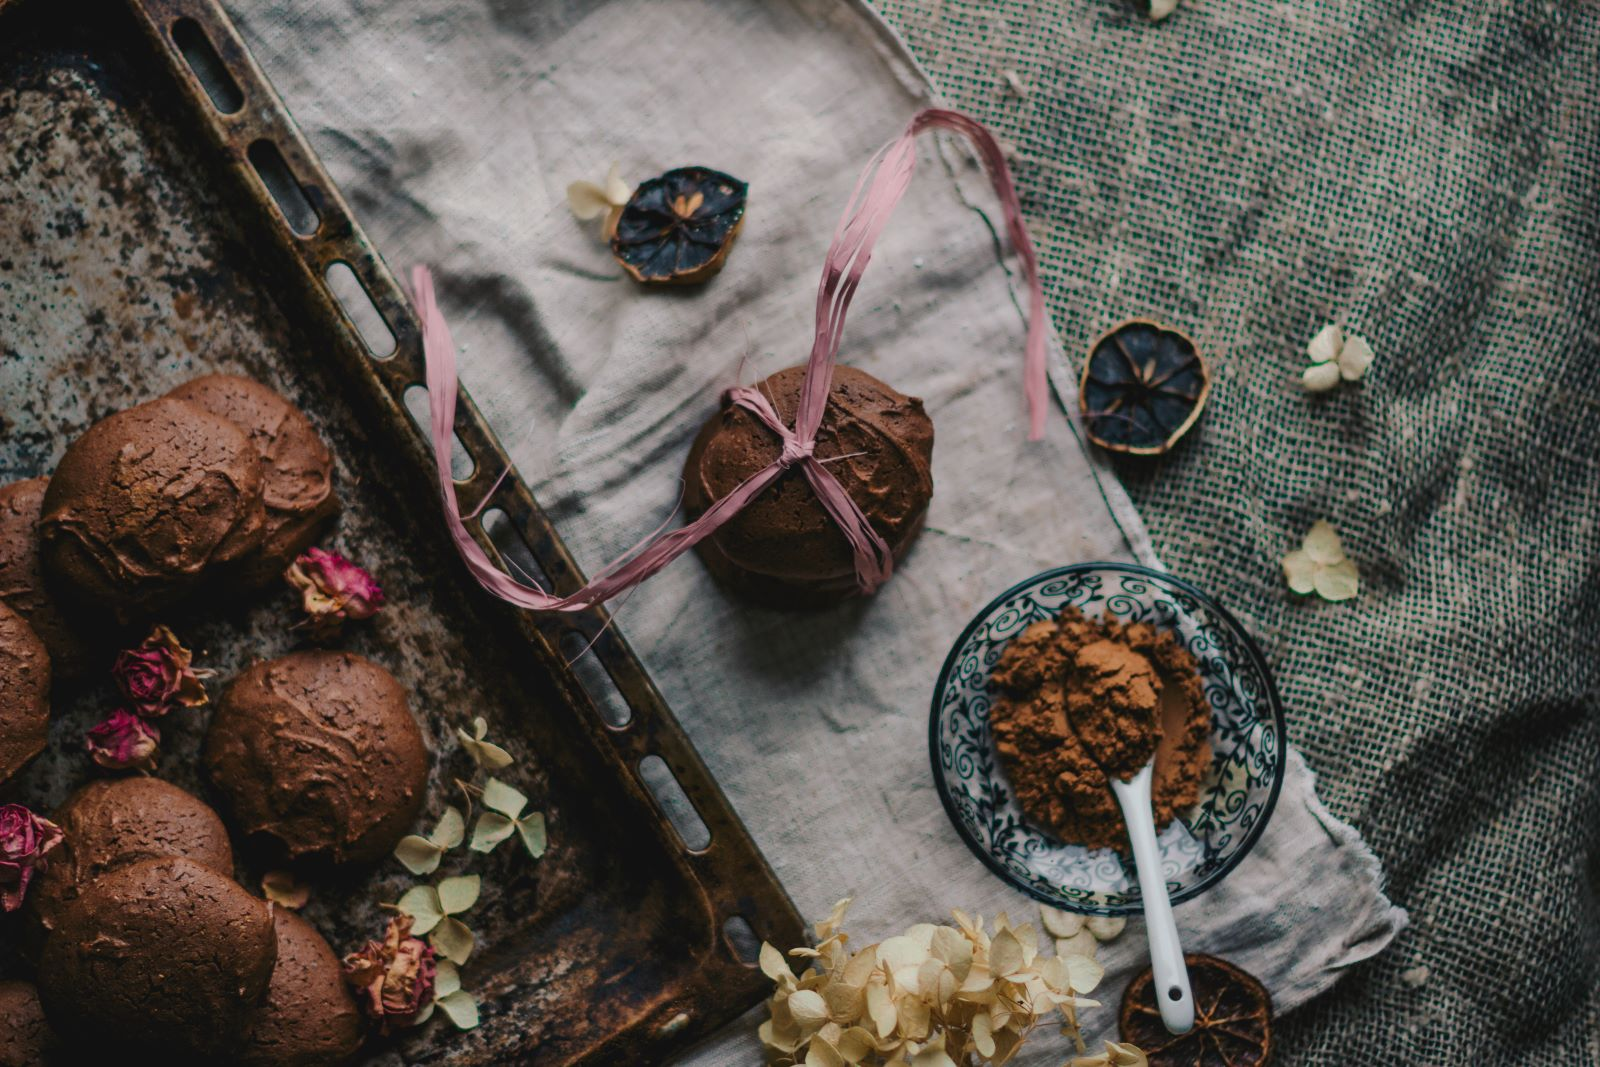 Dark cloth background with a lighter strip of cloth laying on top with dark chocolate powder and a dark chocolate cookies with a bow wrapped around. in the left side a baking sheet with more dark chocolate cookies and flower petals scattered between them